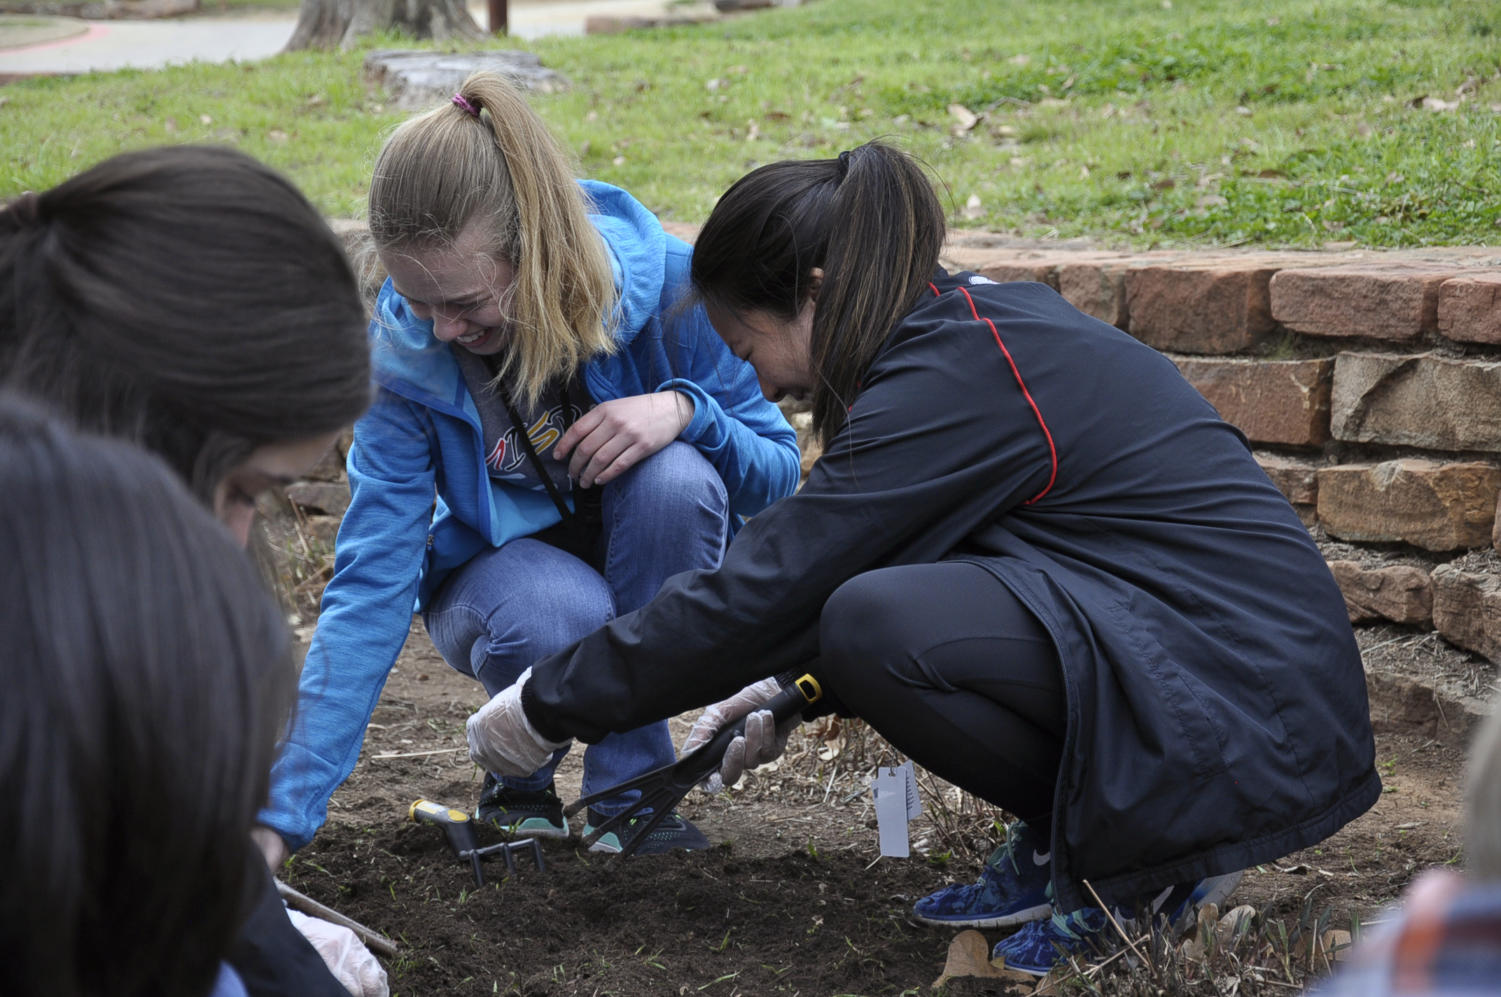 Spreading mulch, junior Megan Novak and senior Trinity Nguyen volunteer on the Day of Service on March 7.